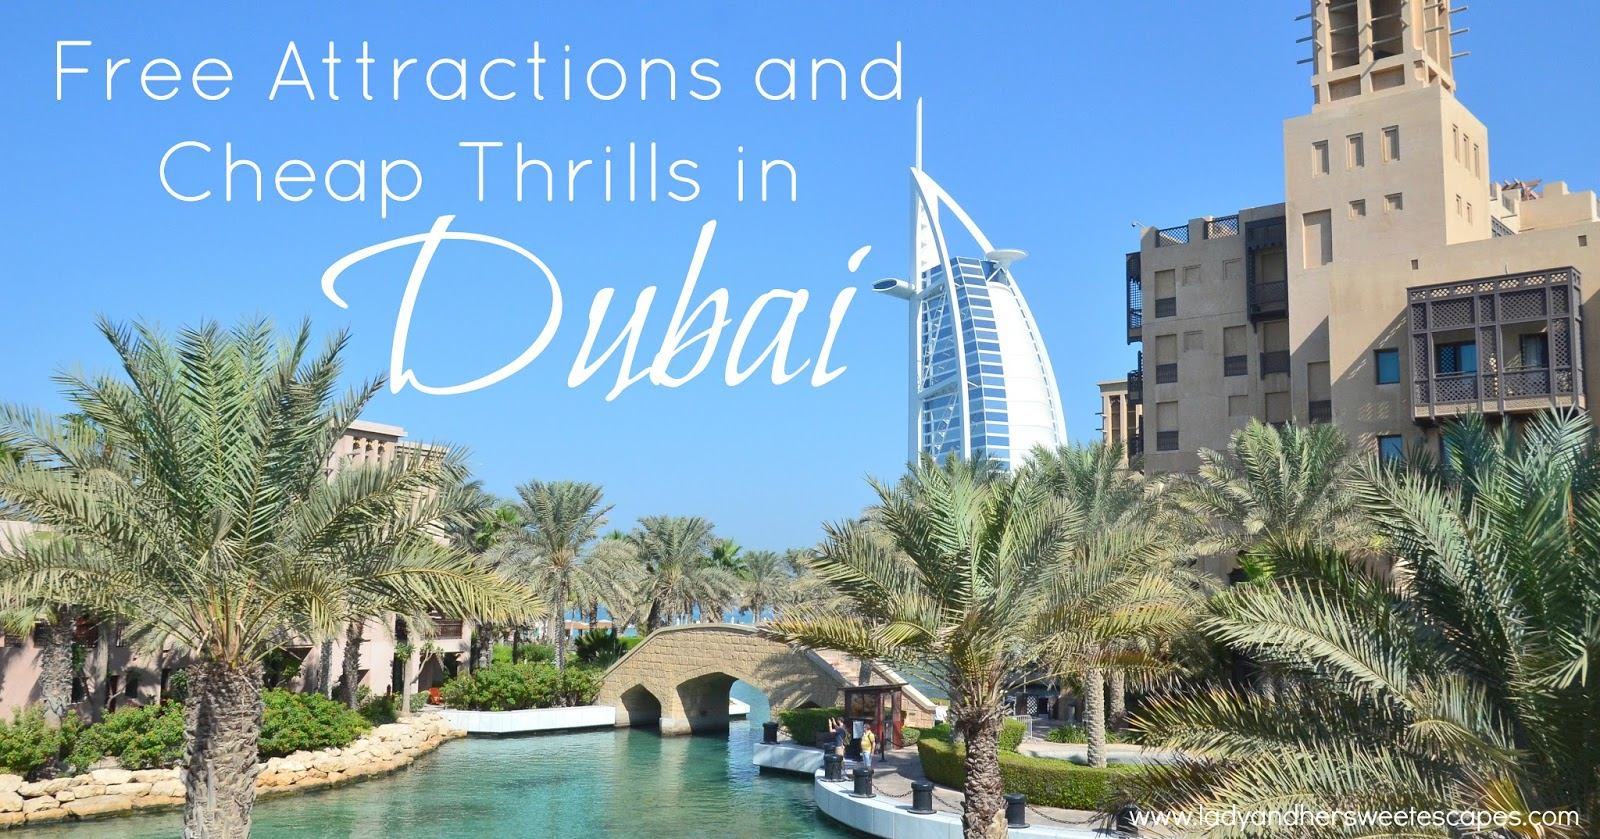 Free Attractions And Cheap Thrills In Dubai Lady Her Sweet Escapes